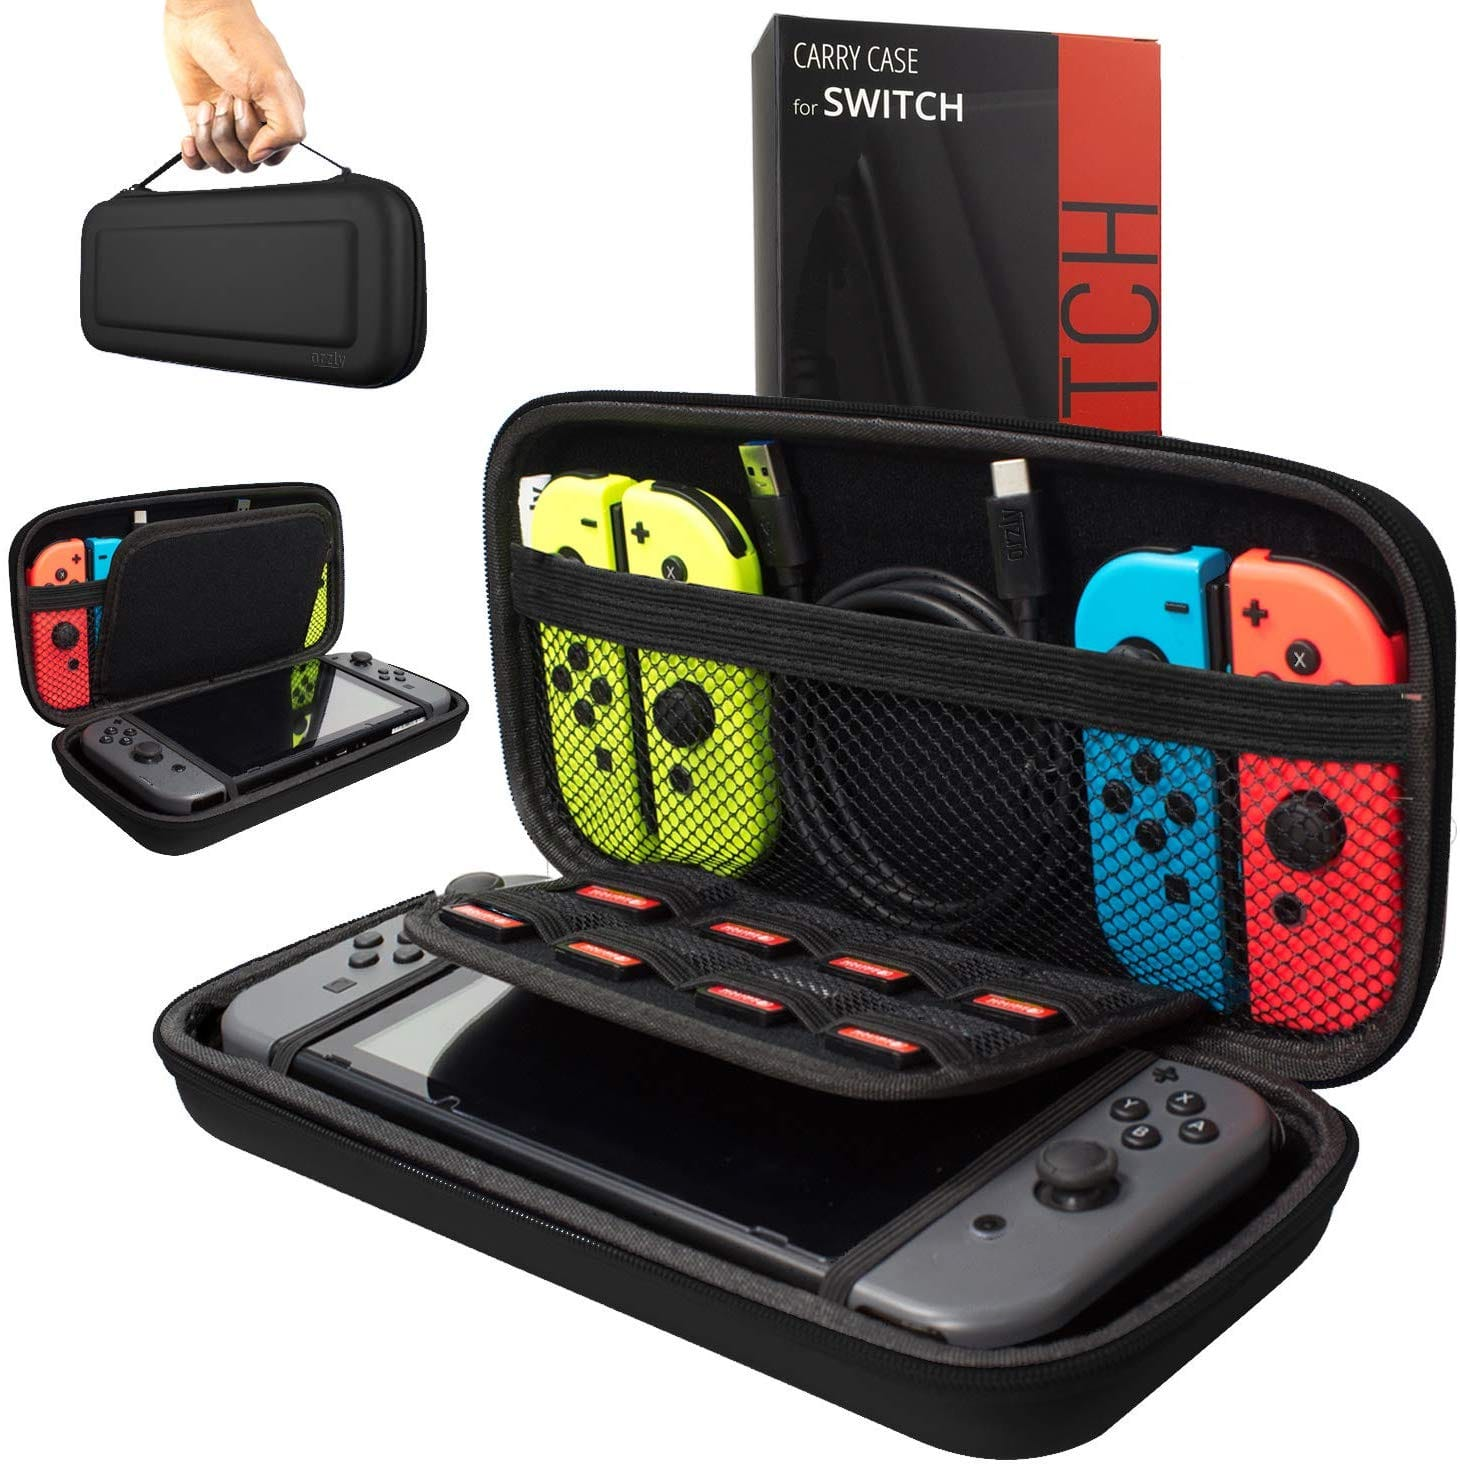 Orzly Carry Case for Nintendo Switch - Black Protective Hard Portable Travel Carry Case, $8.88 > Now $9.66 at Amazon. Free Shipping with Prime or Free Shipping Over $25